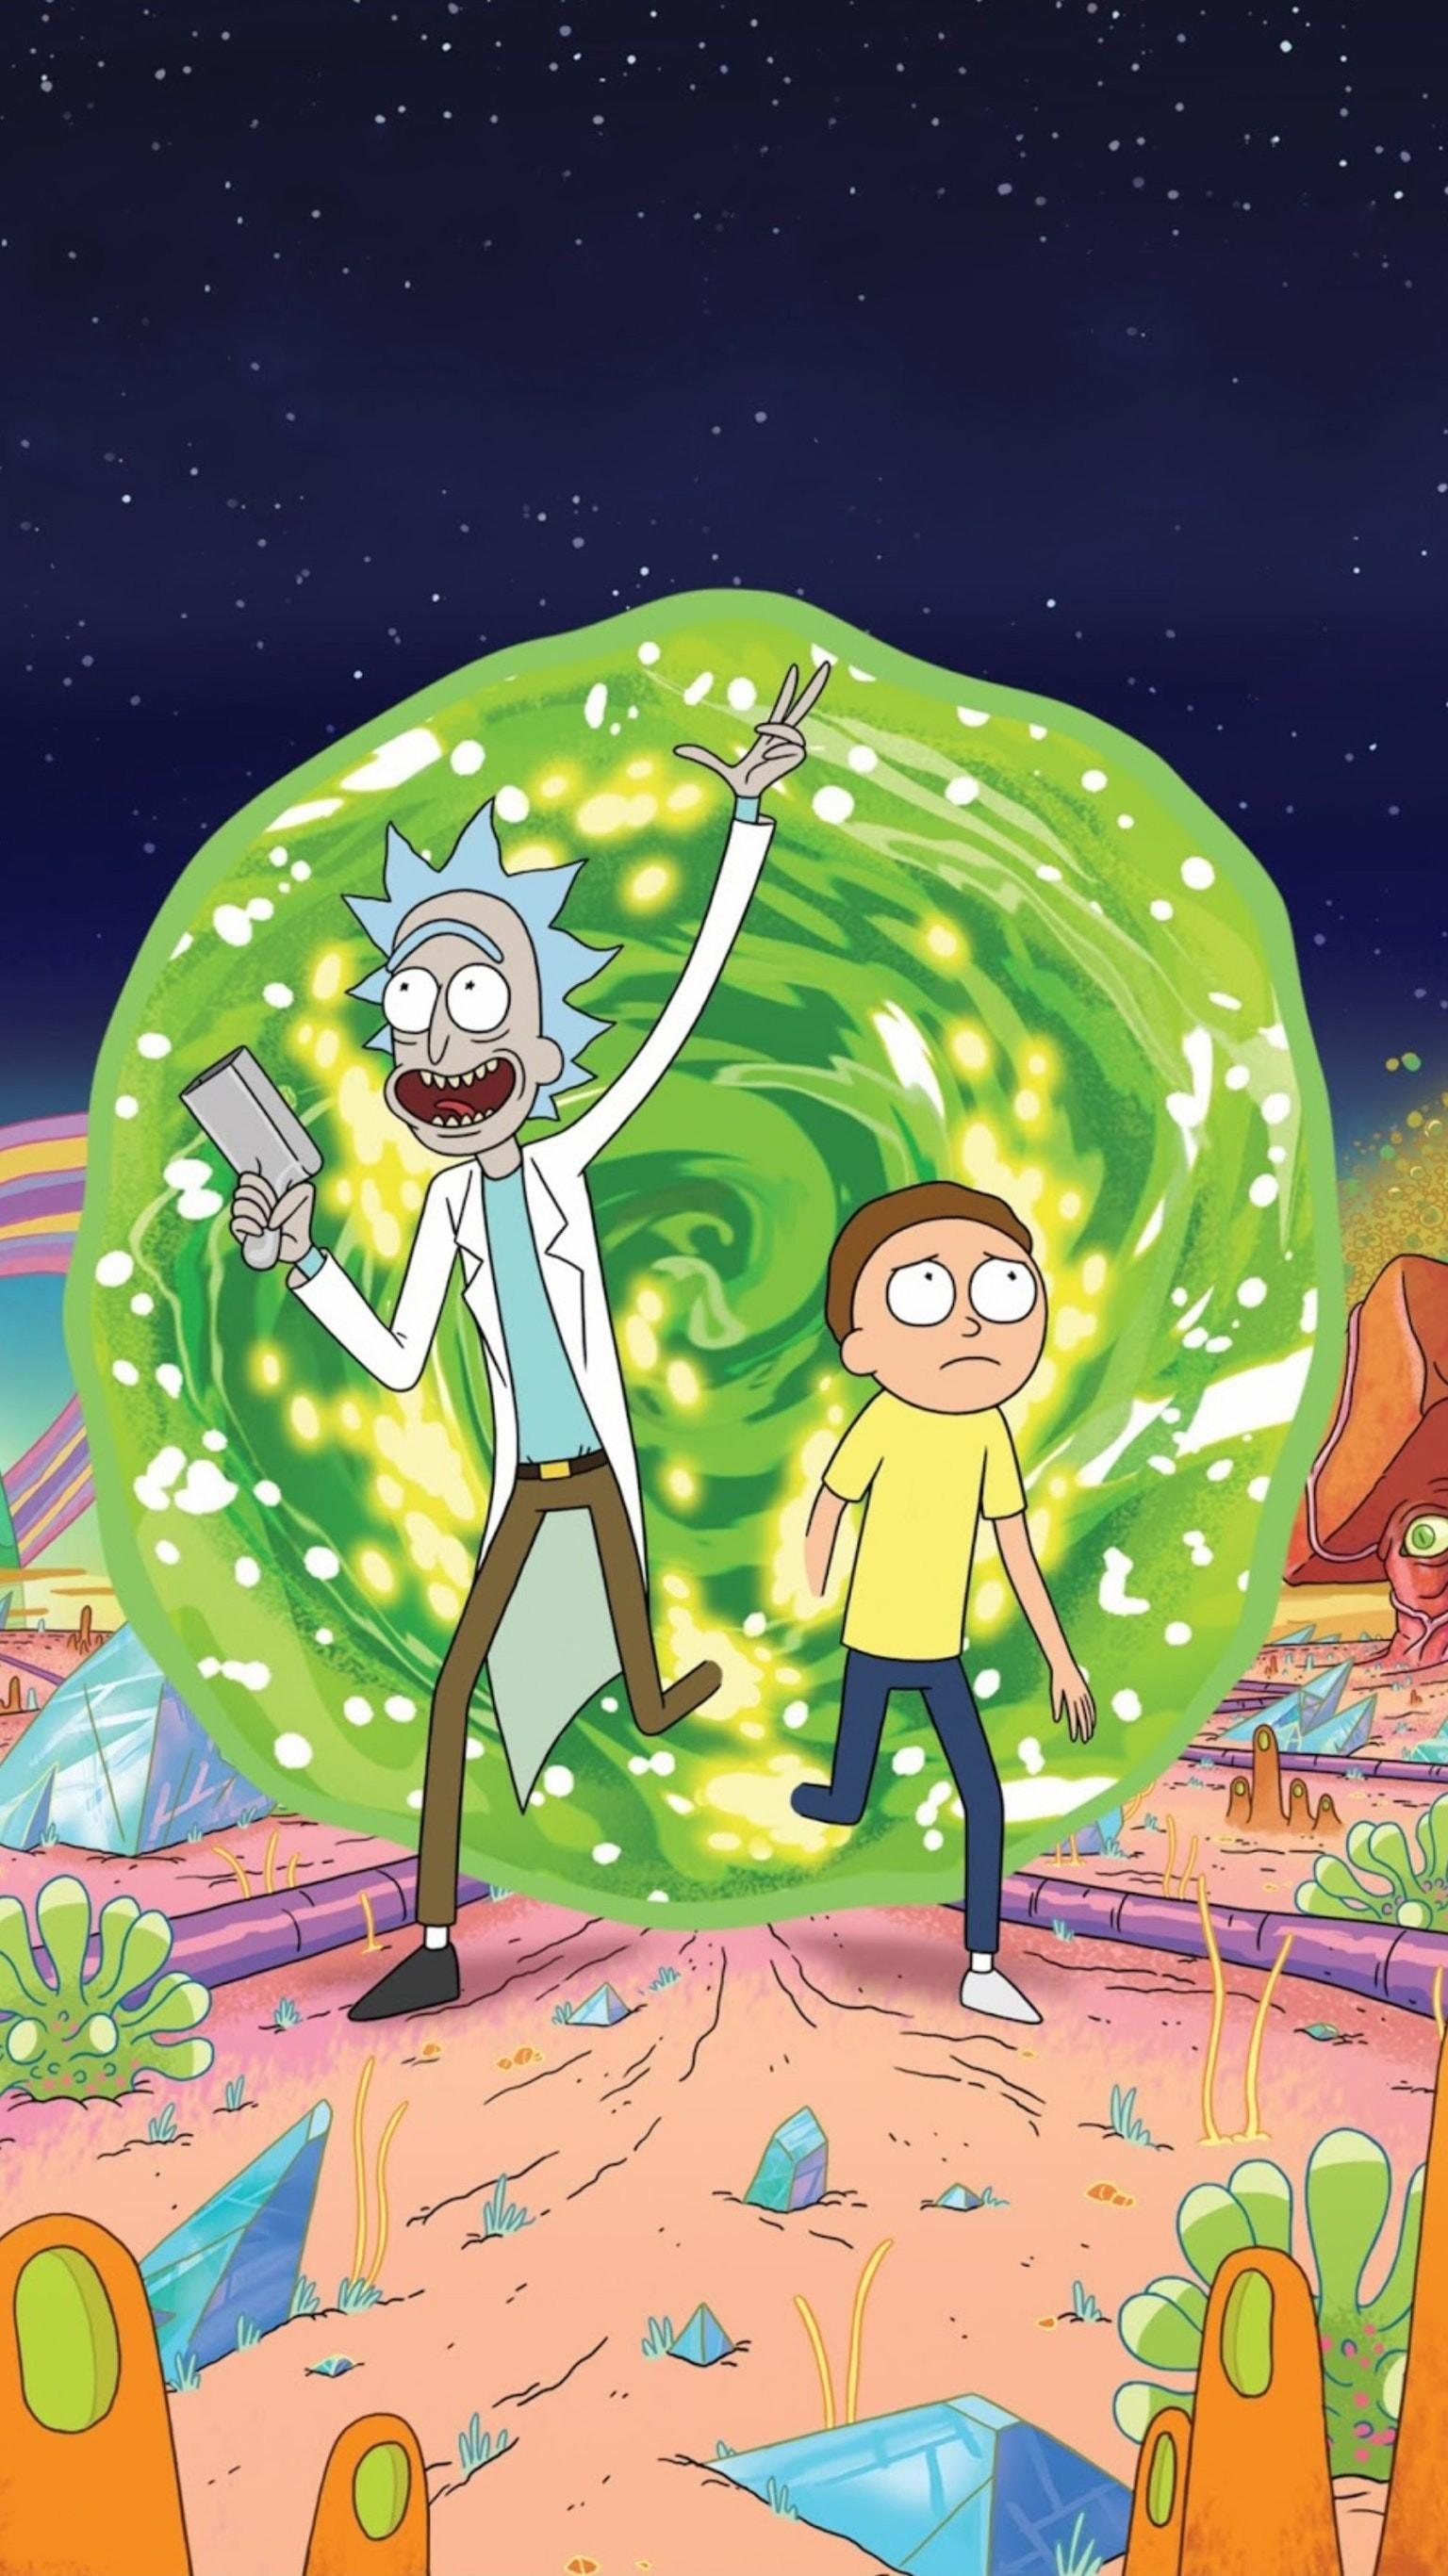 Rick And Morty Wallpaper Iphone : morty, wallpaper, iphone, Iphone, 1080p, Morty, Wallpaper, Phone